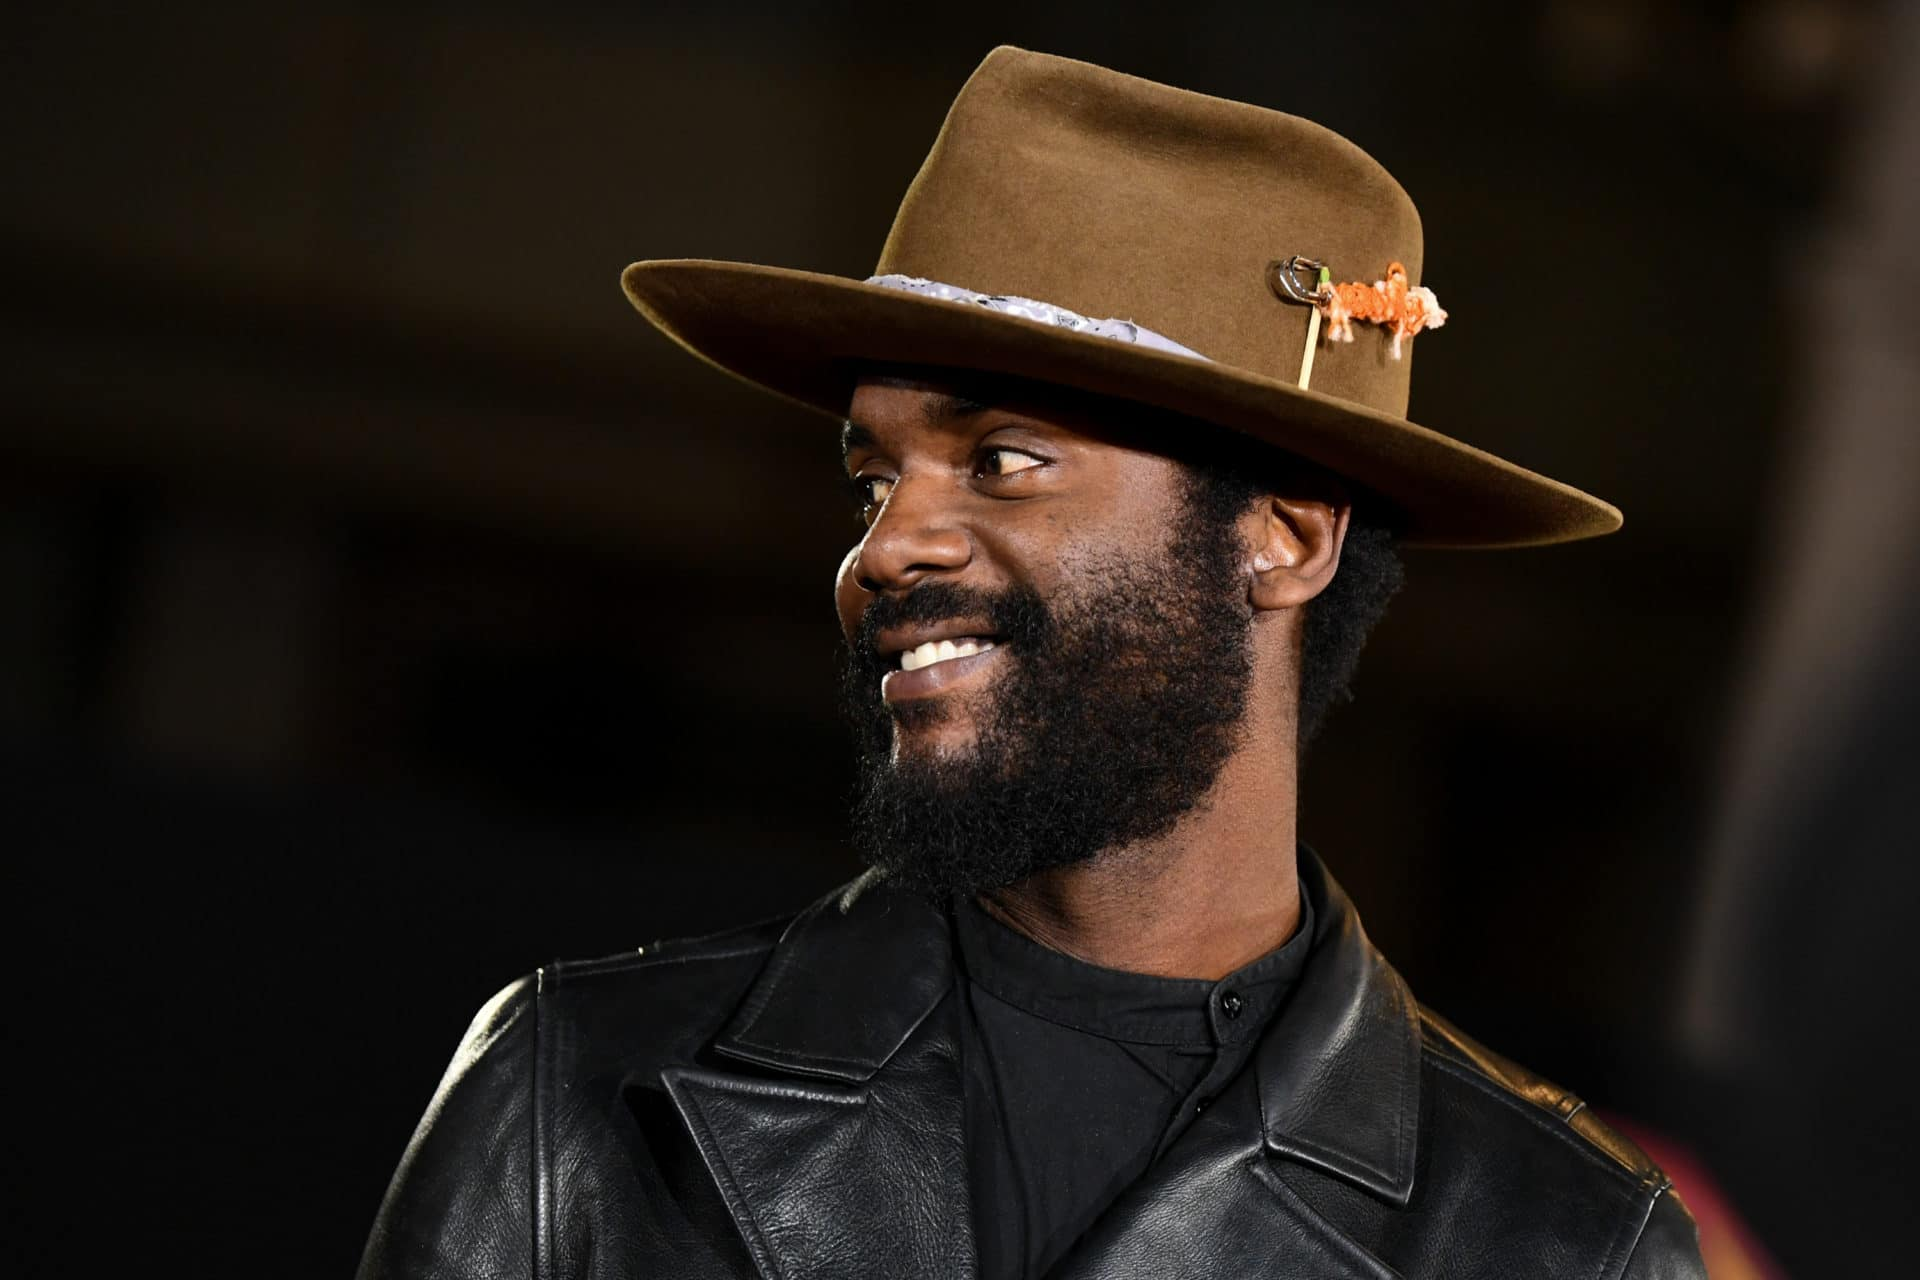 Gary Clark Jr. Tackles Racism 'In The Middle Of Trump Country' In Latest Album 'This Land'